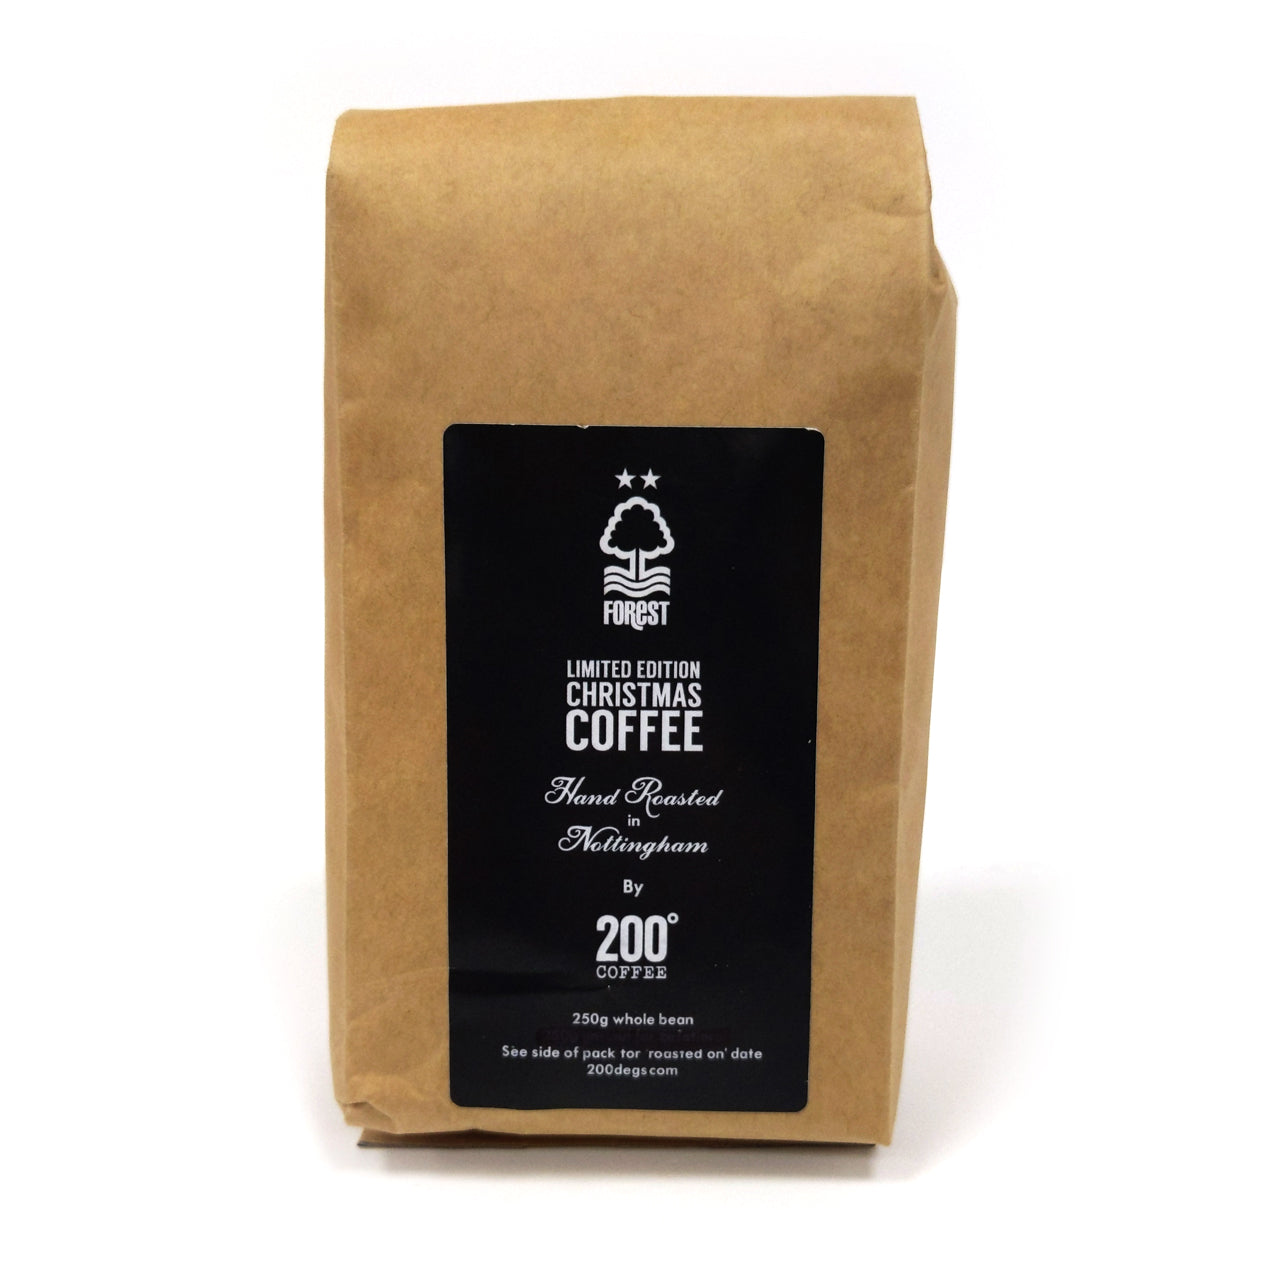 NFFC 200 Degrees Ground Coffee 250g